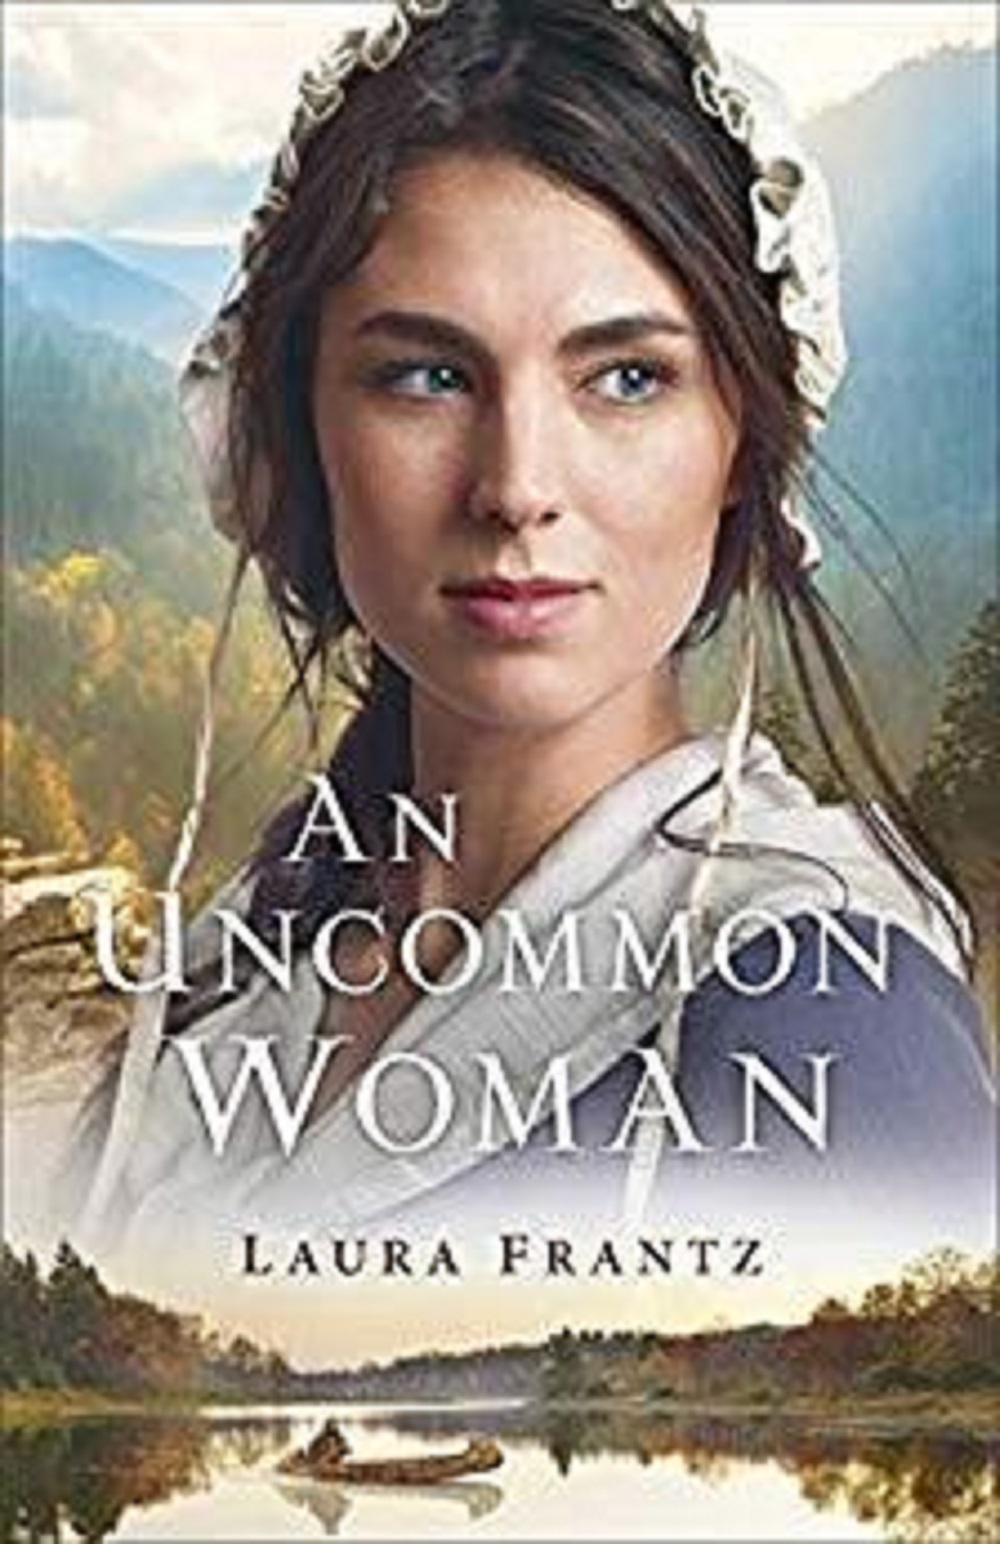 An Uncommon Woman (novel)